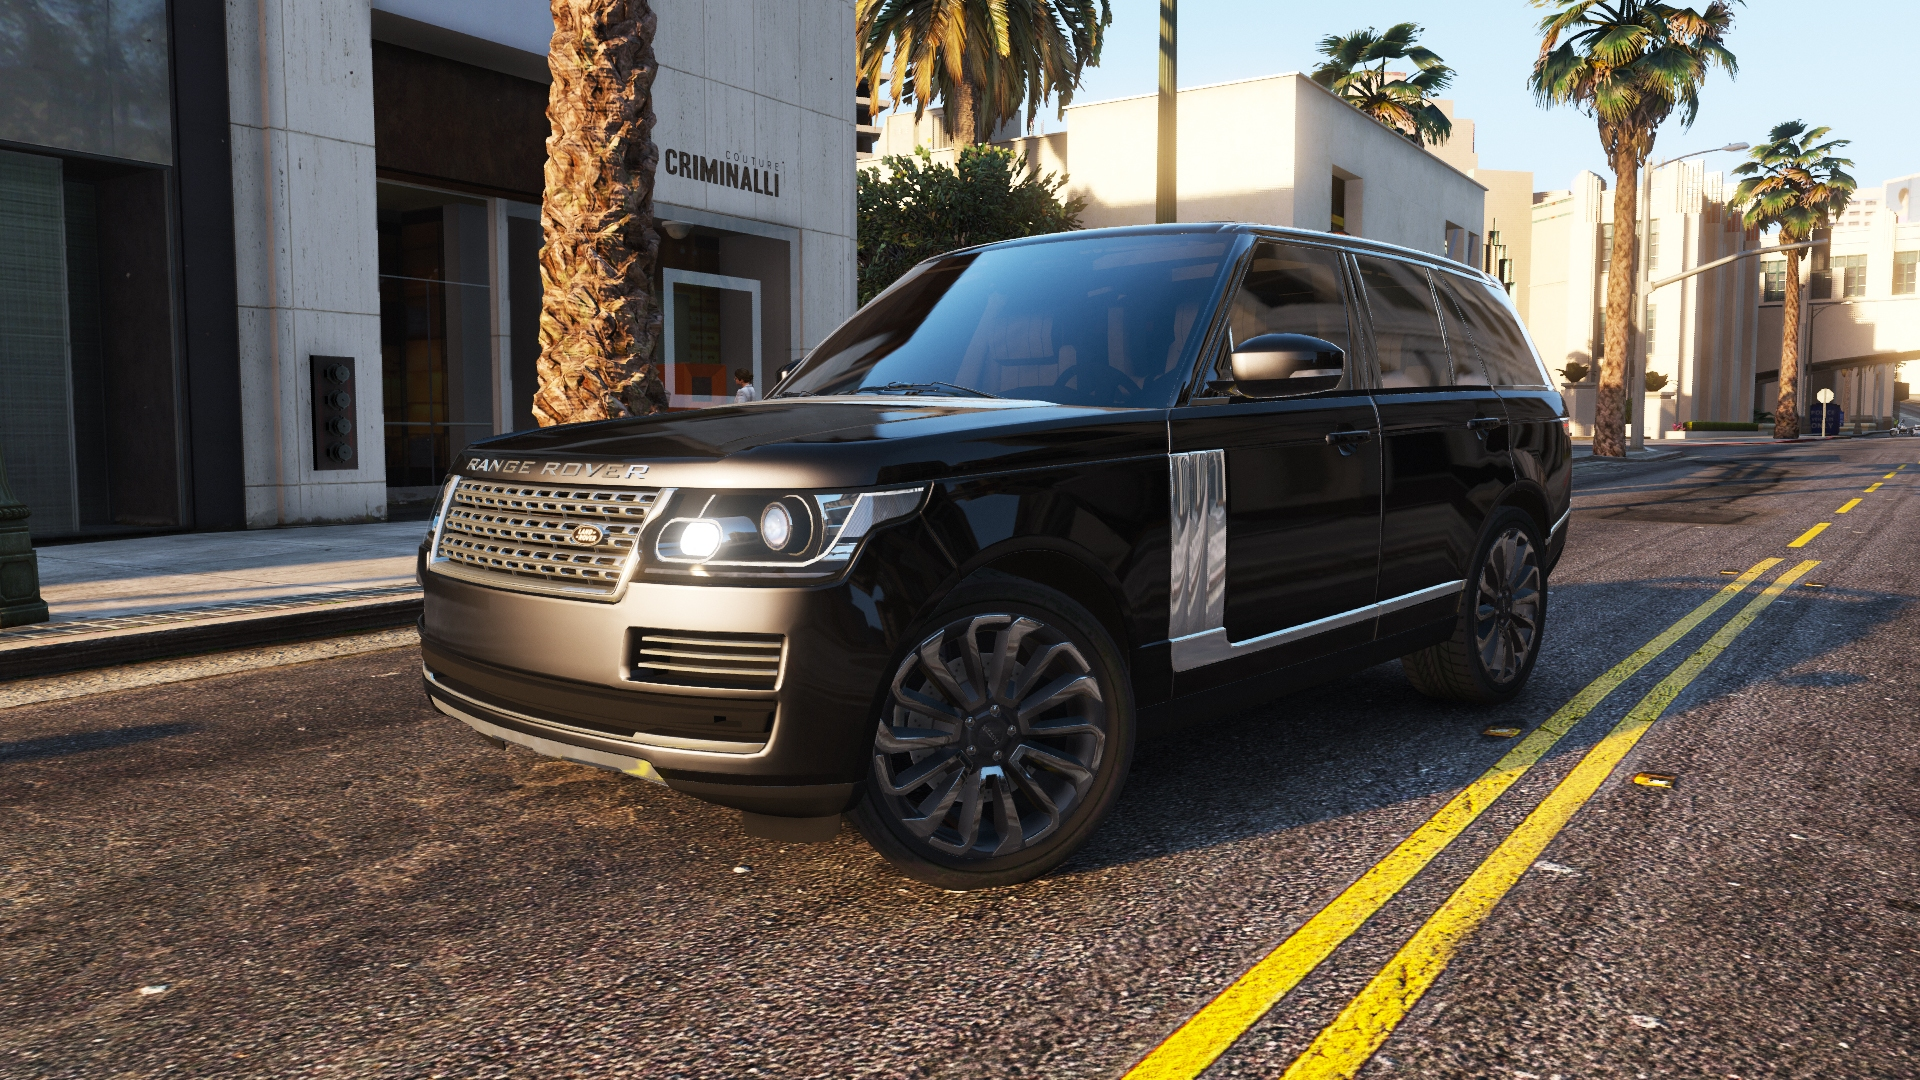 Range Rover Vogue 2013 1.2 для GTA V - Скриншот 2